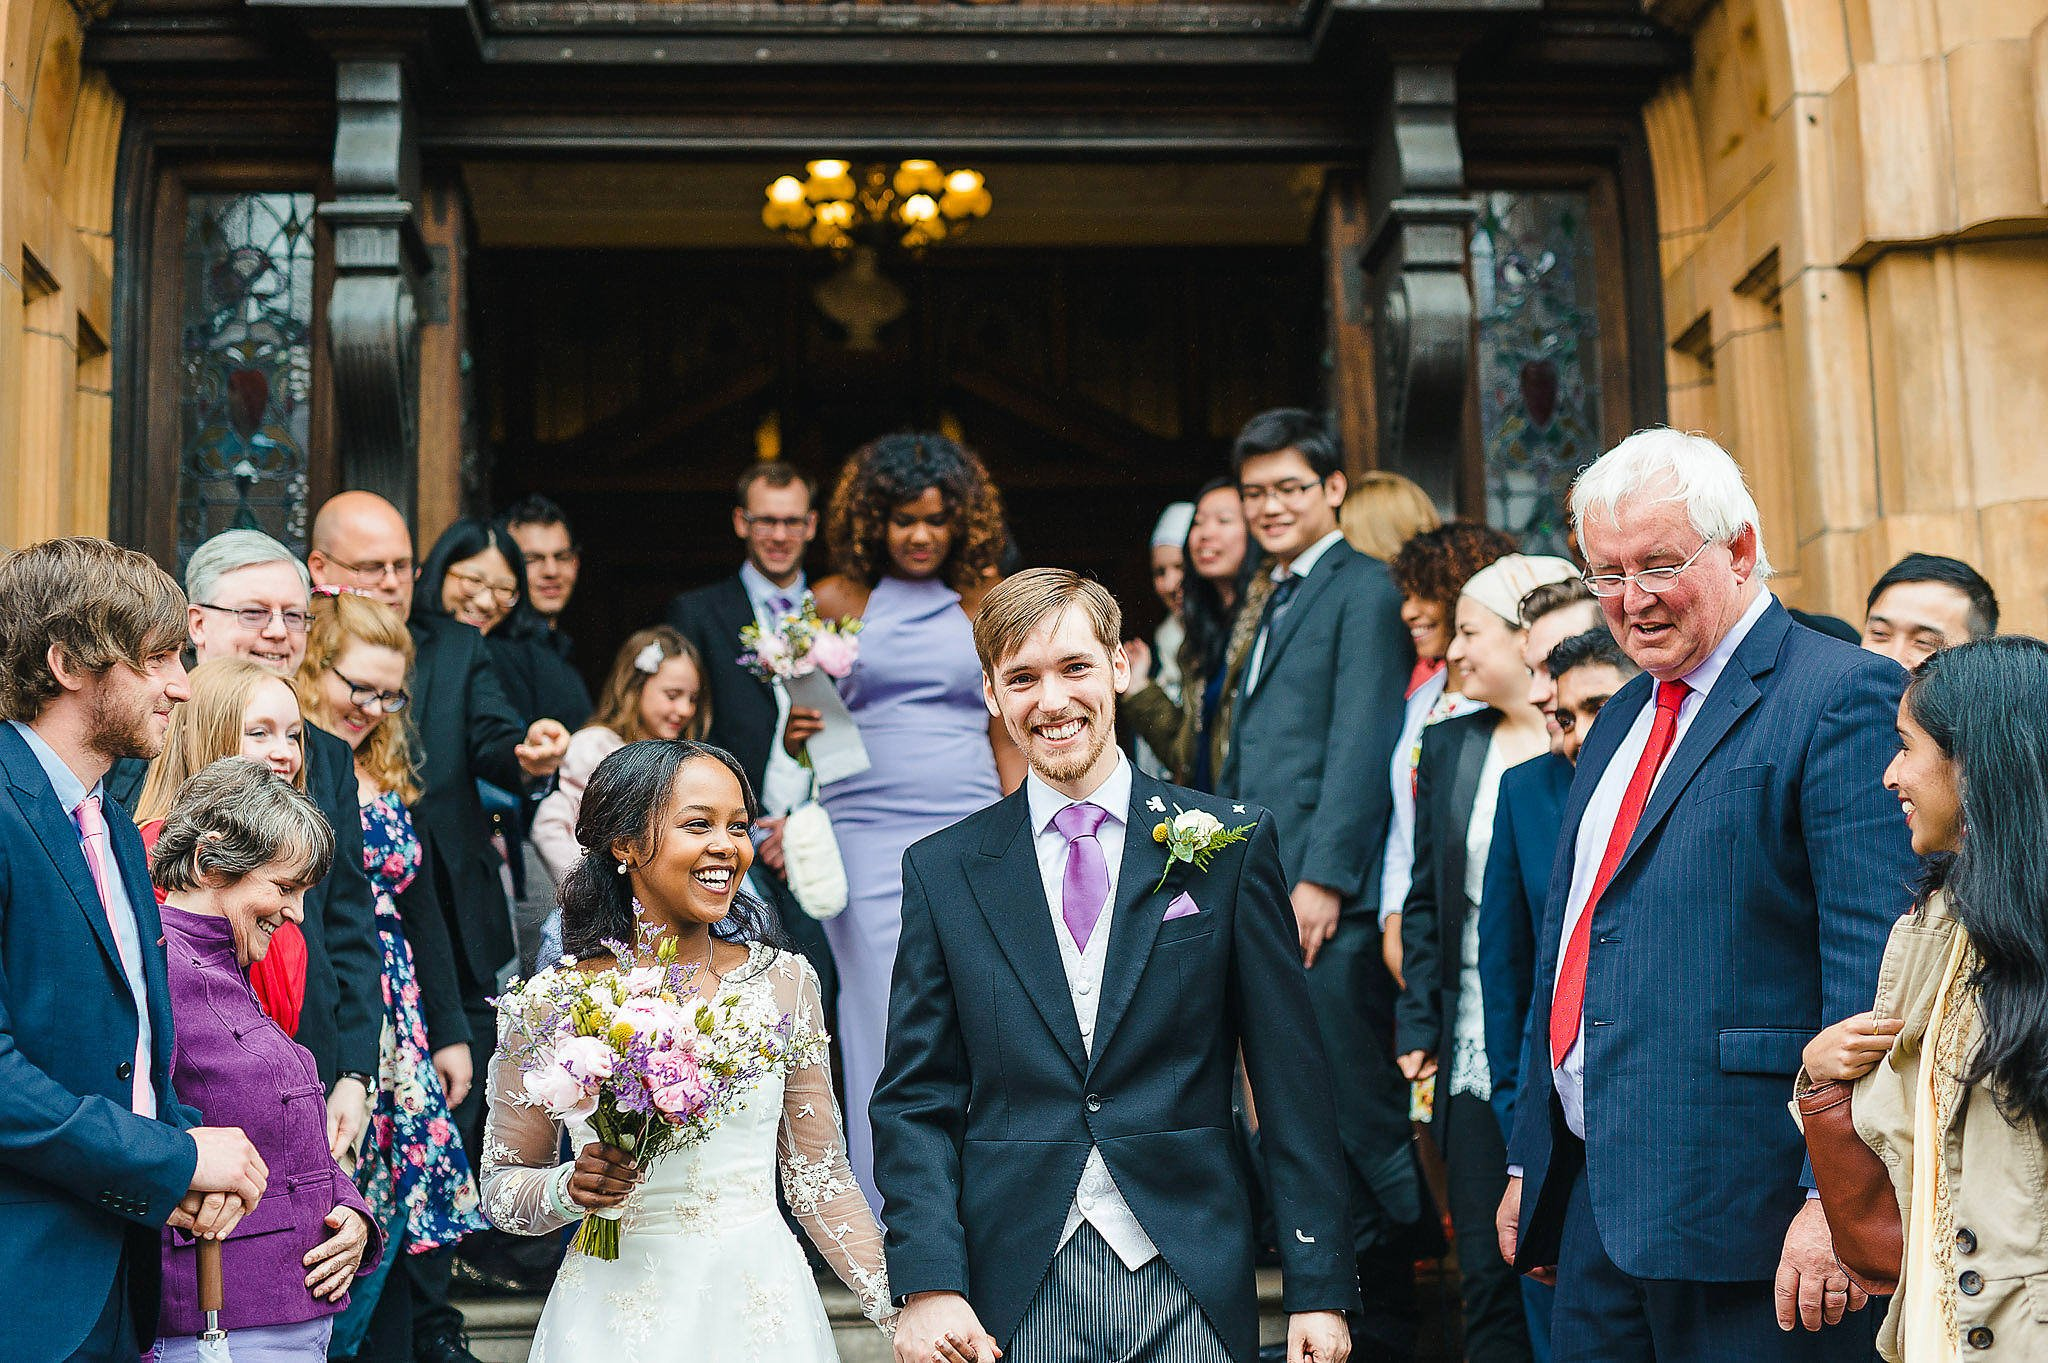 Midlands wedding photography - 2015 Review 2